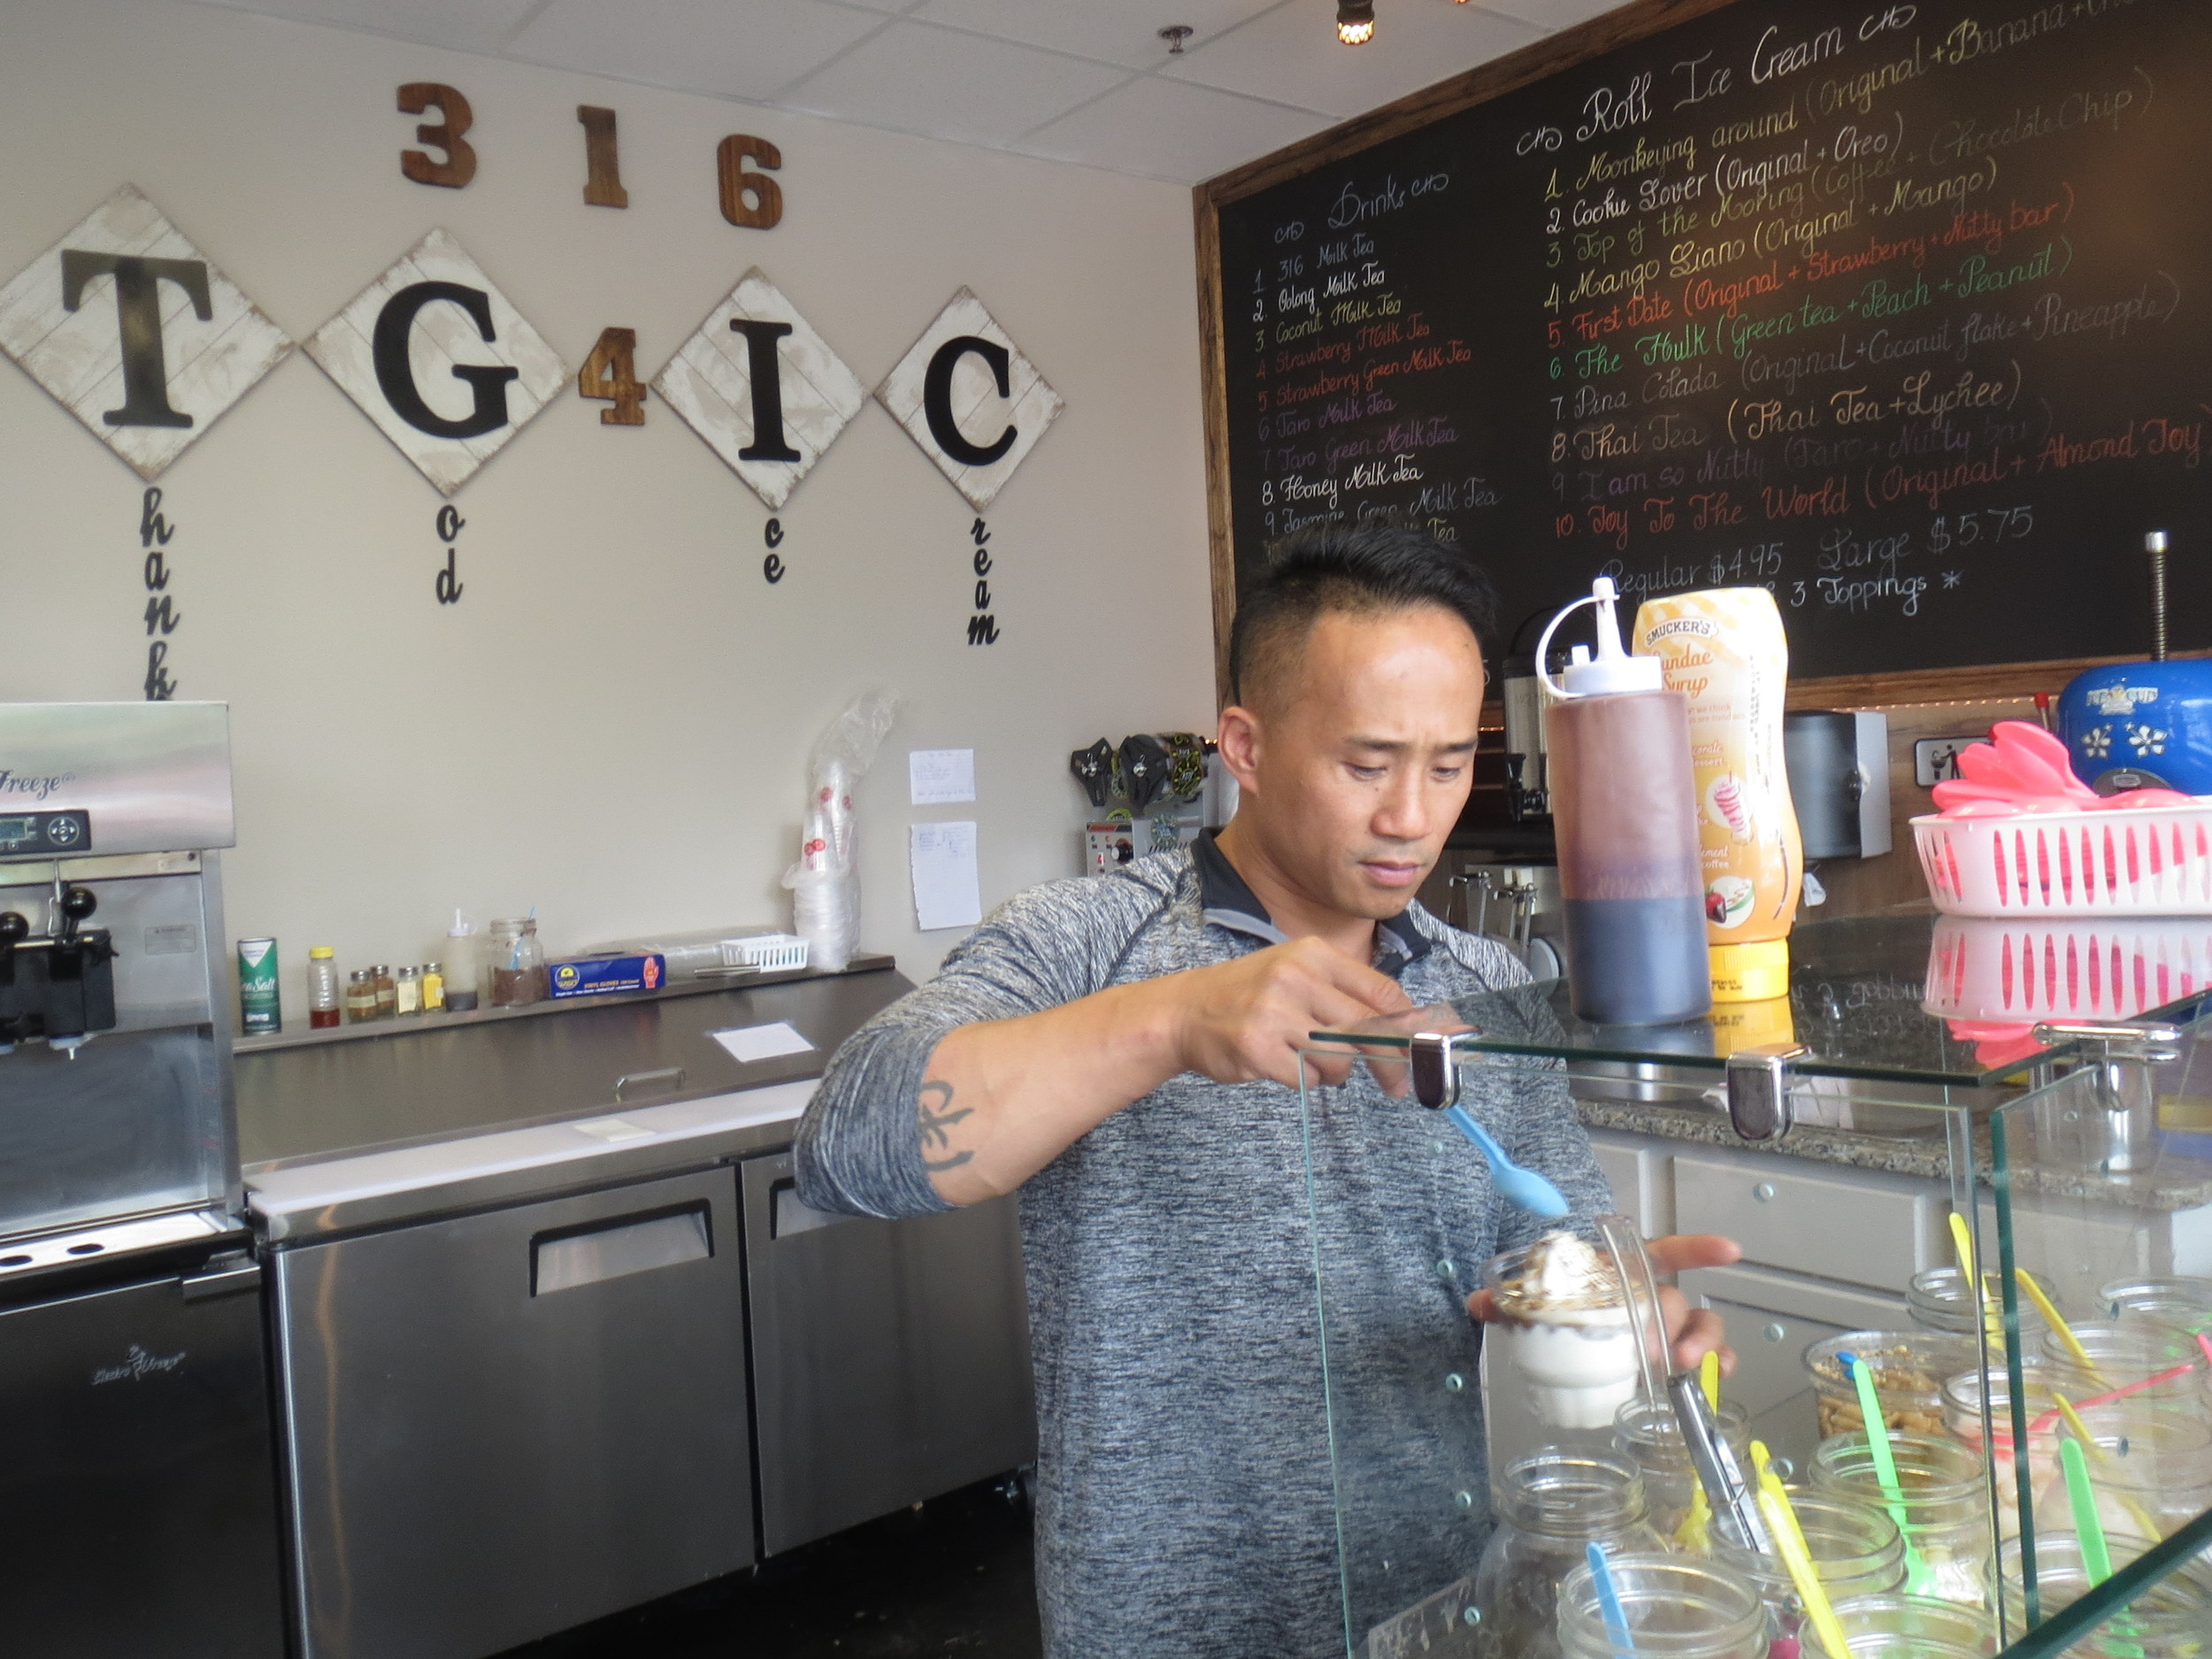 Among the rolled ice cream specialties at 316 T.G. 4 Ice Cream include green tea, coffee and lychee-enthused offerings.